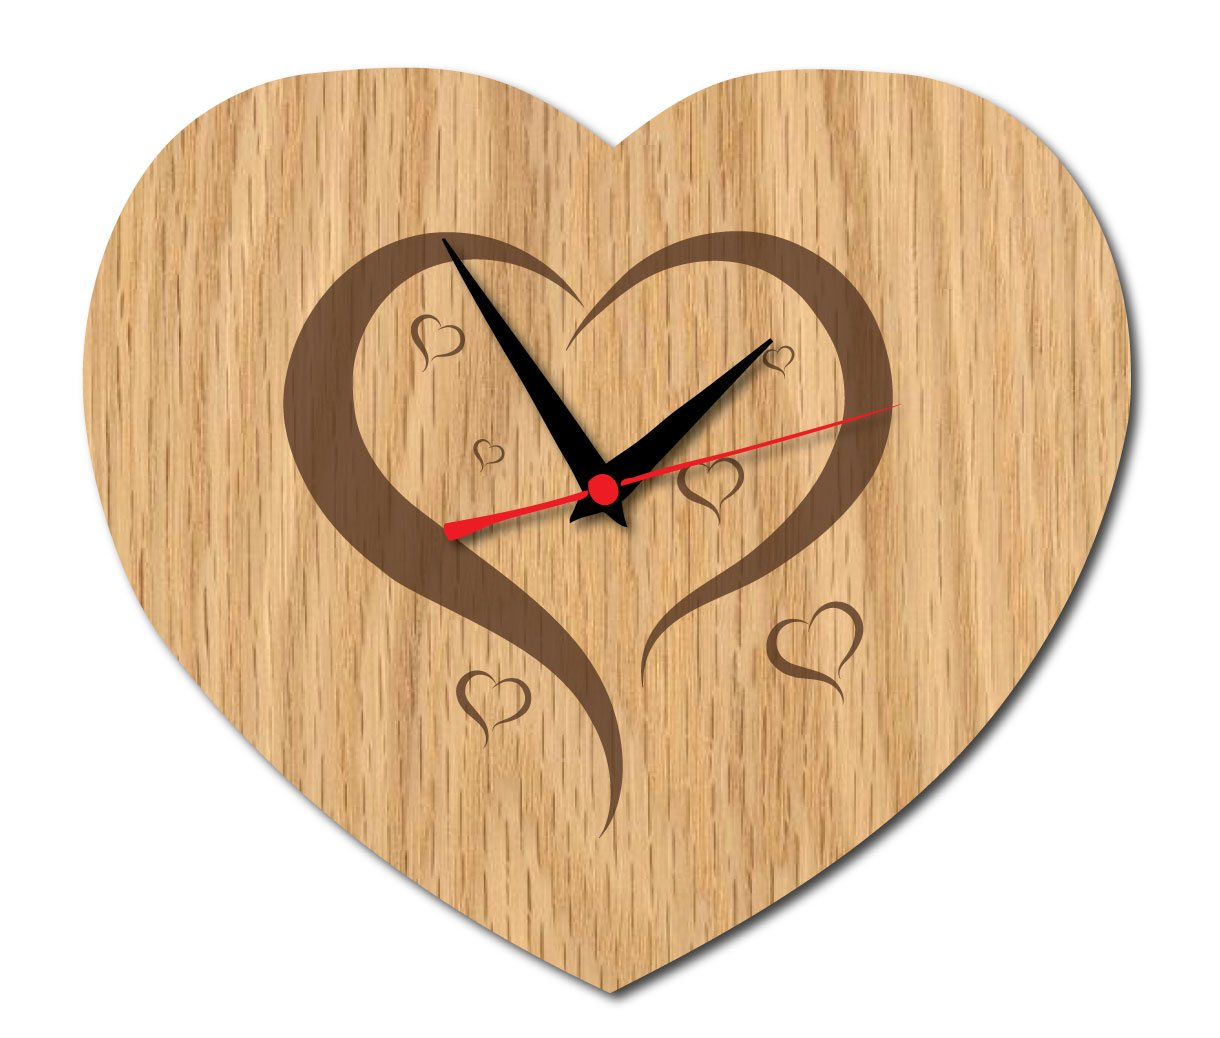 Wooden Heart Clock Or Wall Sign Wall Clock Amazon Kitchen